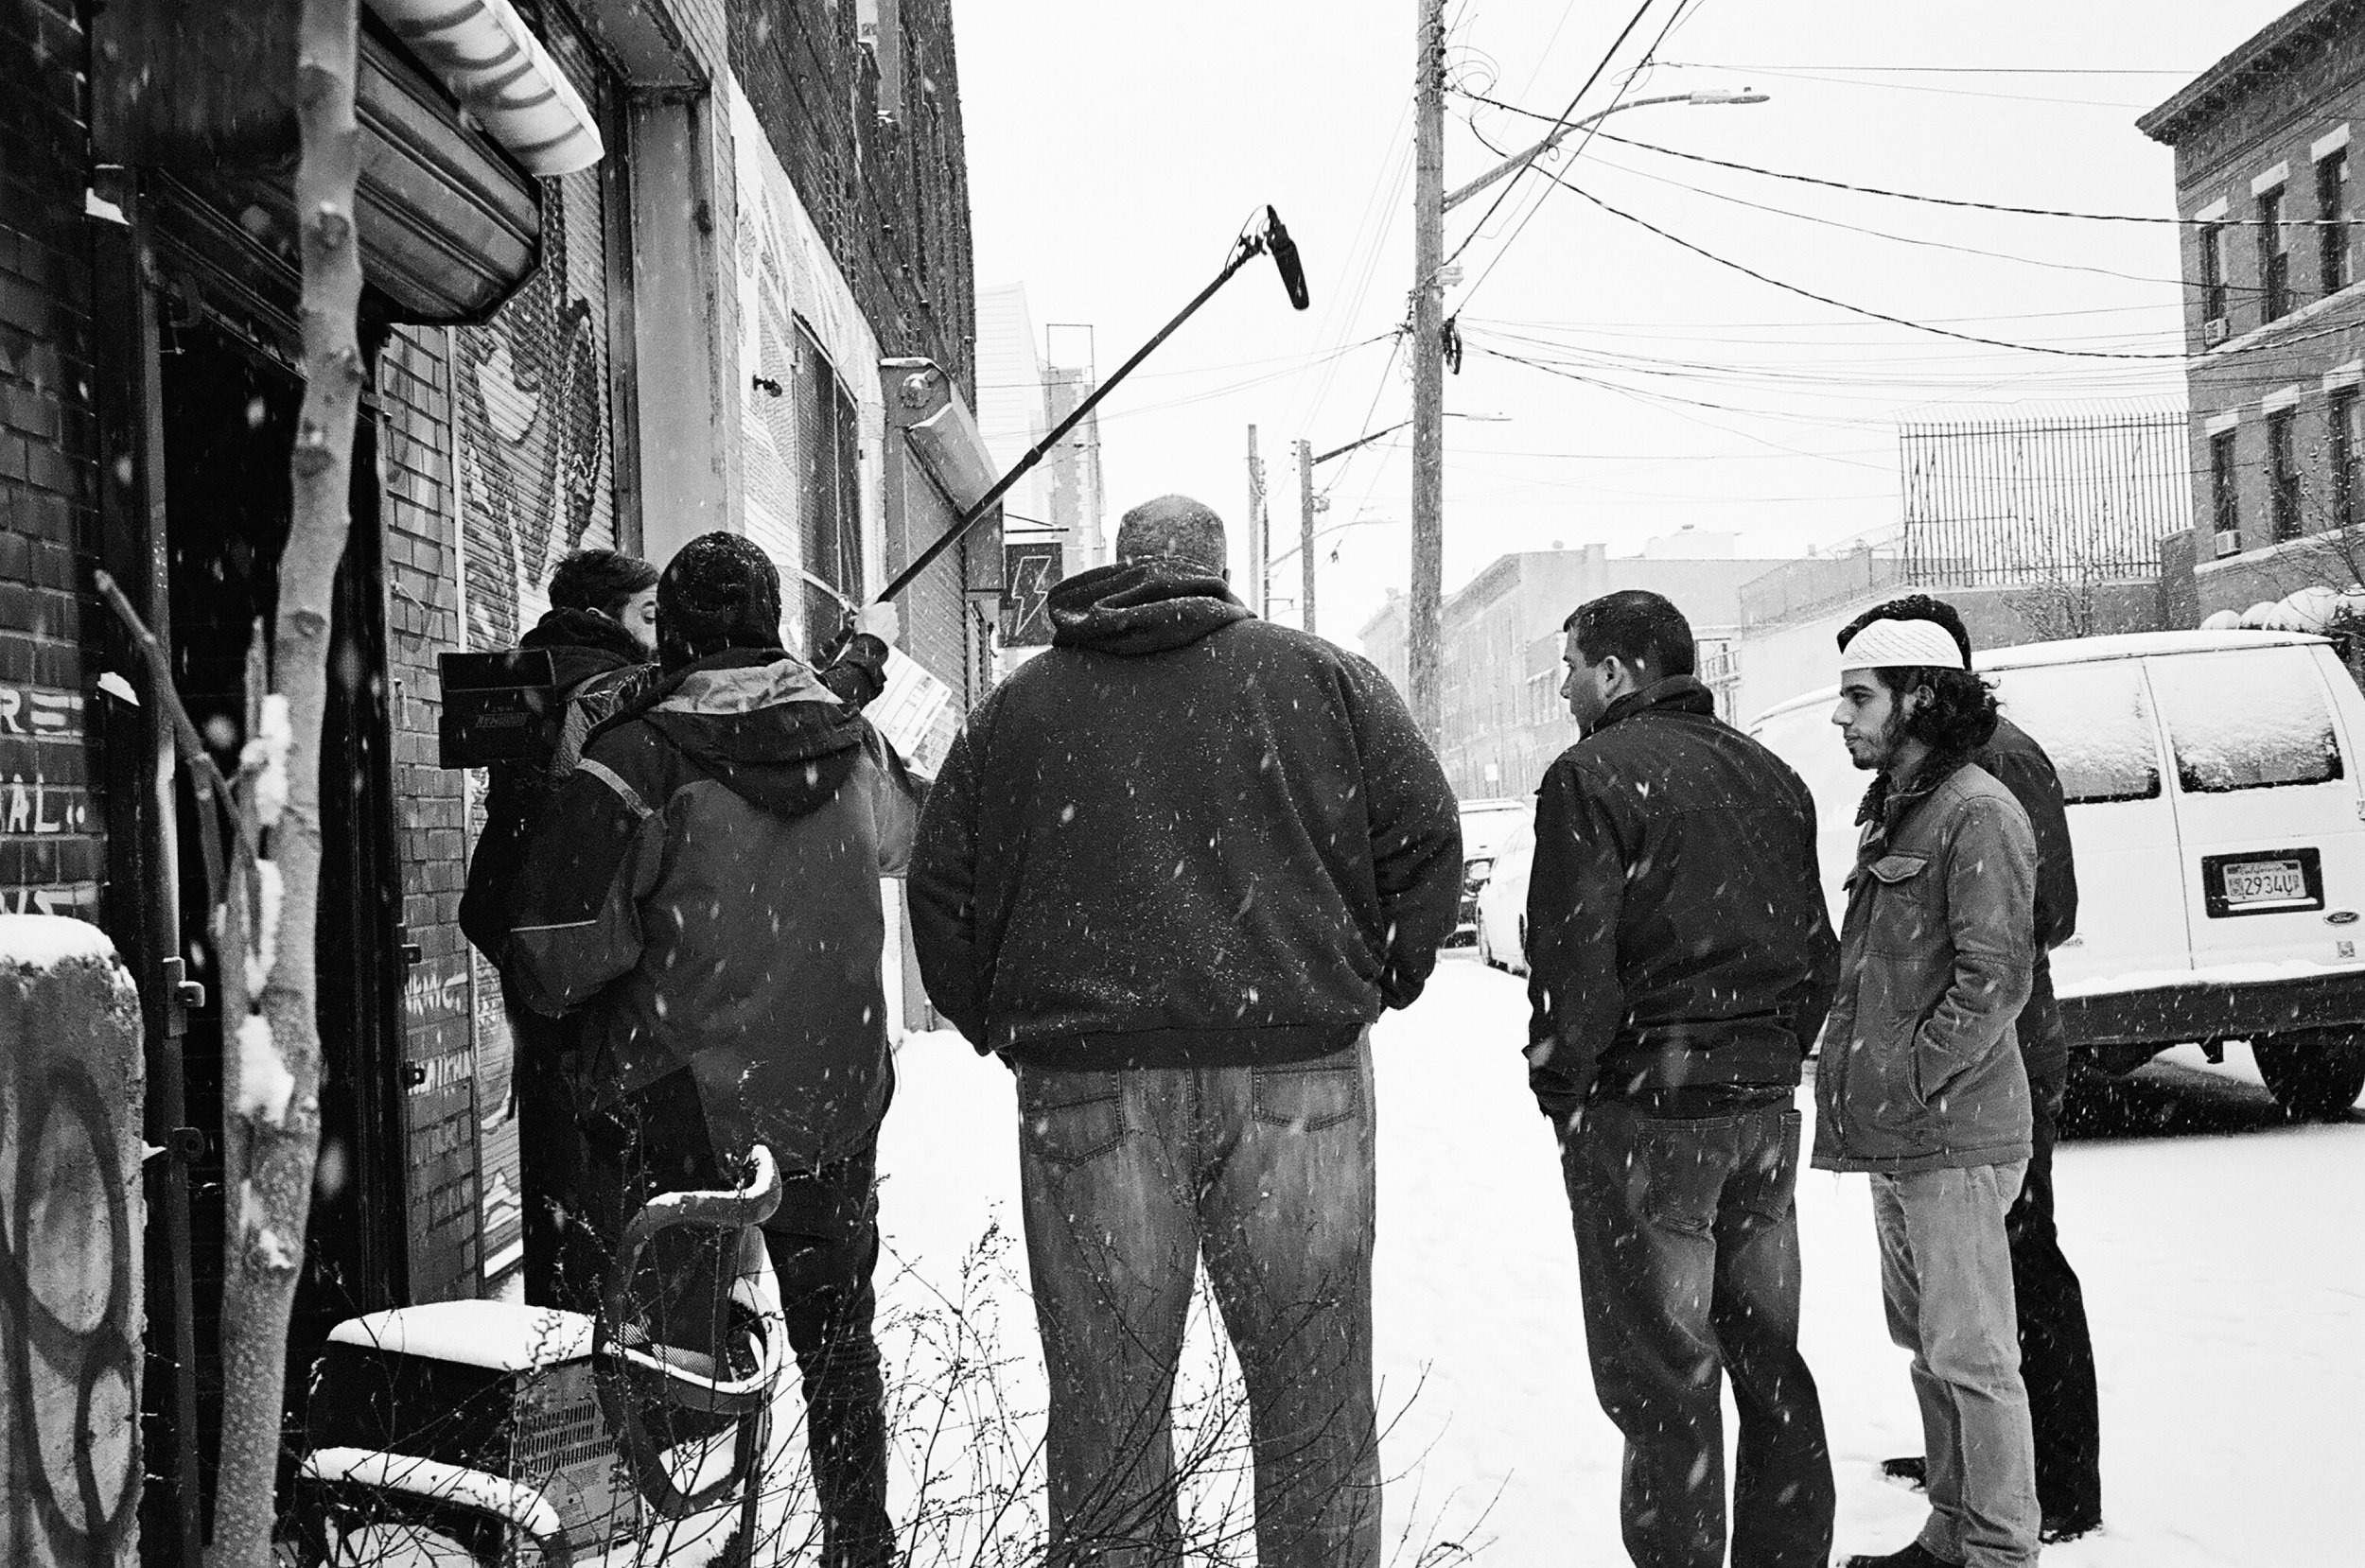 Kamal and his film crew setting up the shot in front of the studio.